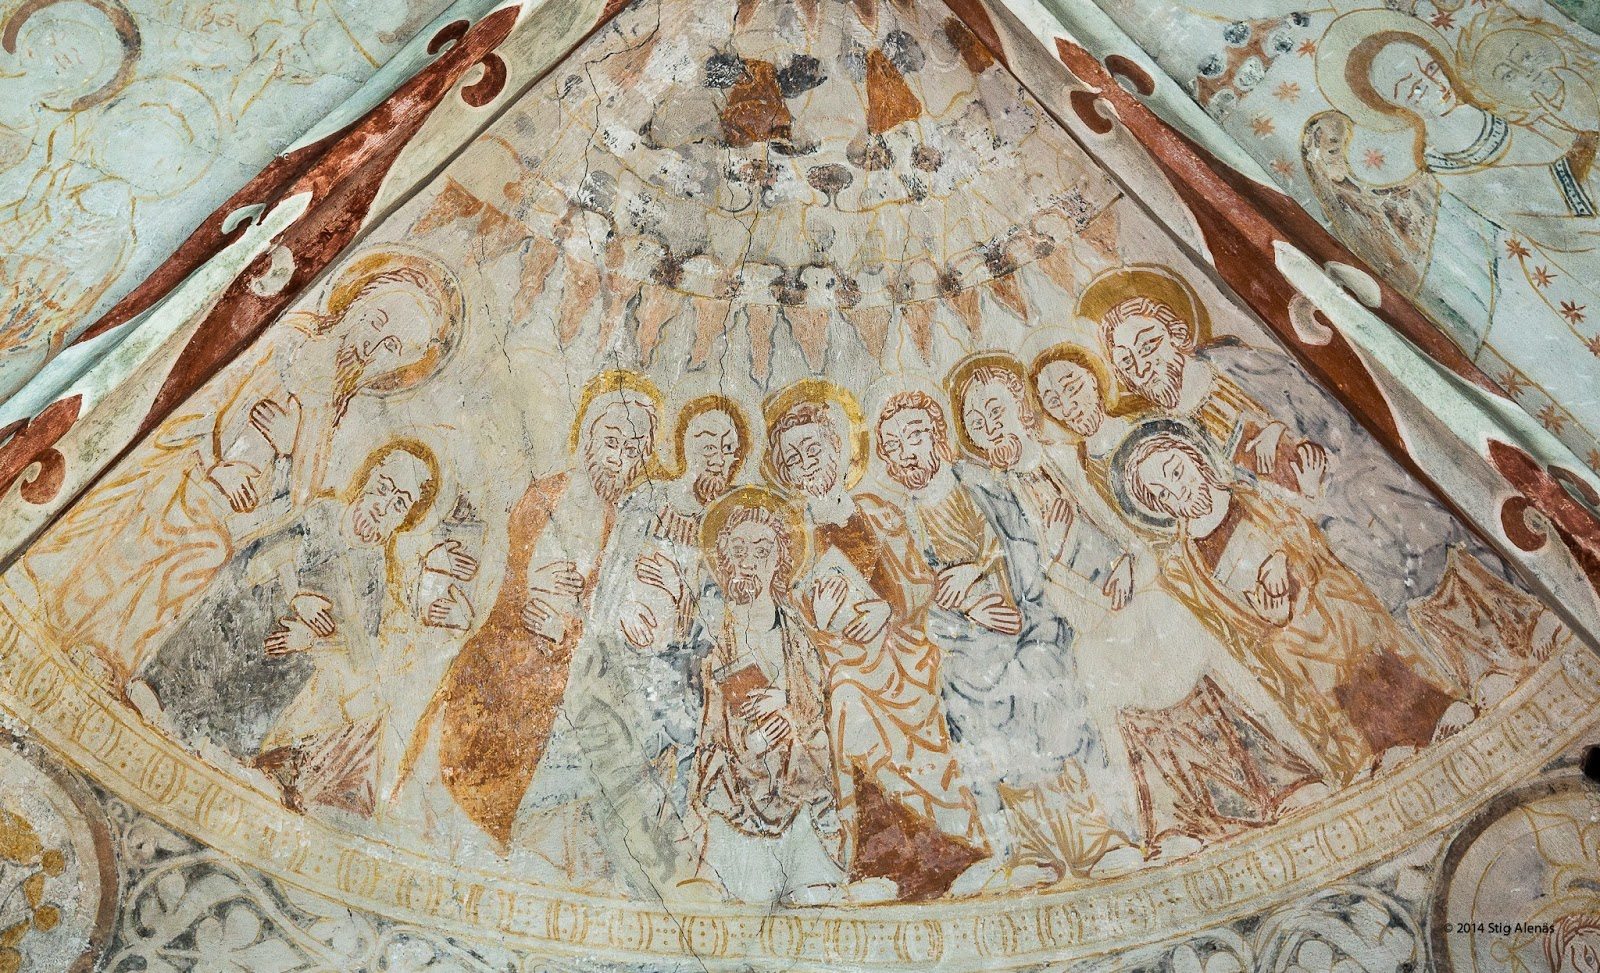 church, pentecost, architecture, mural, interior, fire, christ, tongues, christian, fresco, holy, art, descent, spirit, saint, jesus, apostle, christianity, editorial, sweden, fjelie, wall-painting, https://www.shutterstock.com/image-photo/descent-holy-spirit-upon-apostles-gothic-538582723